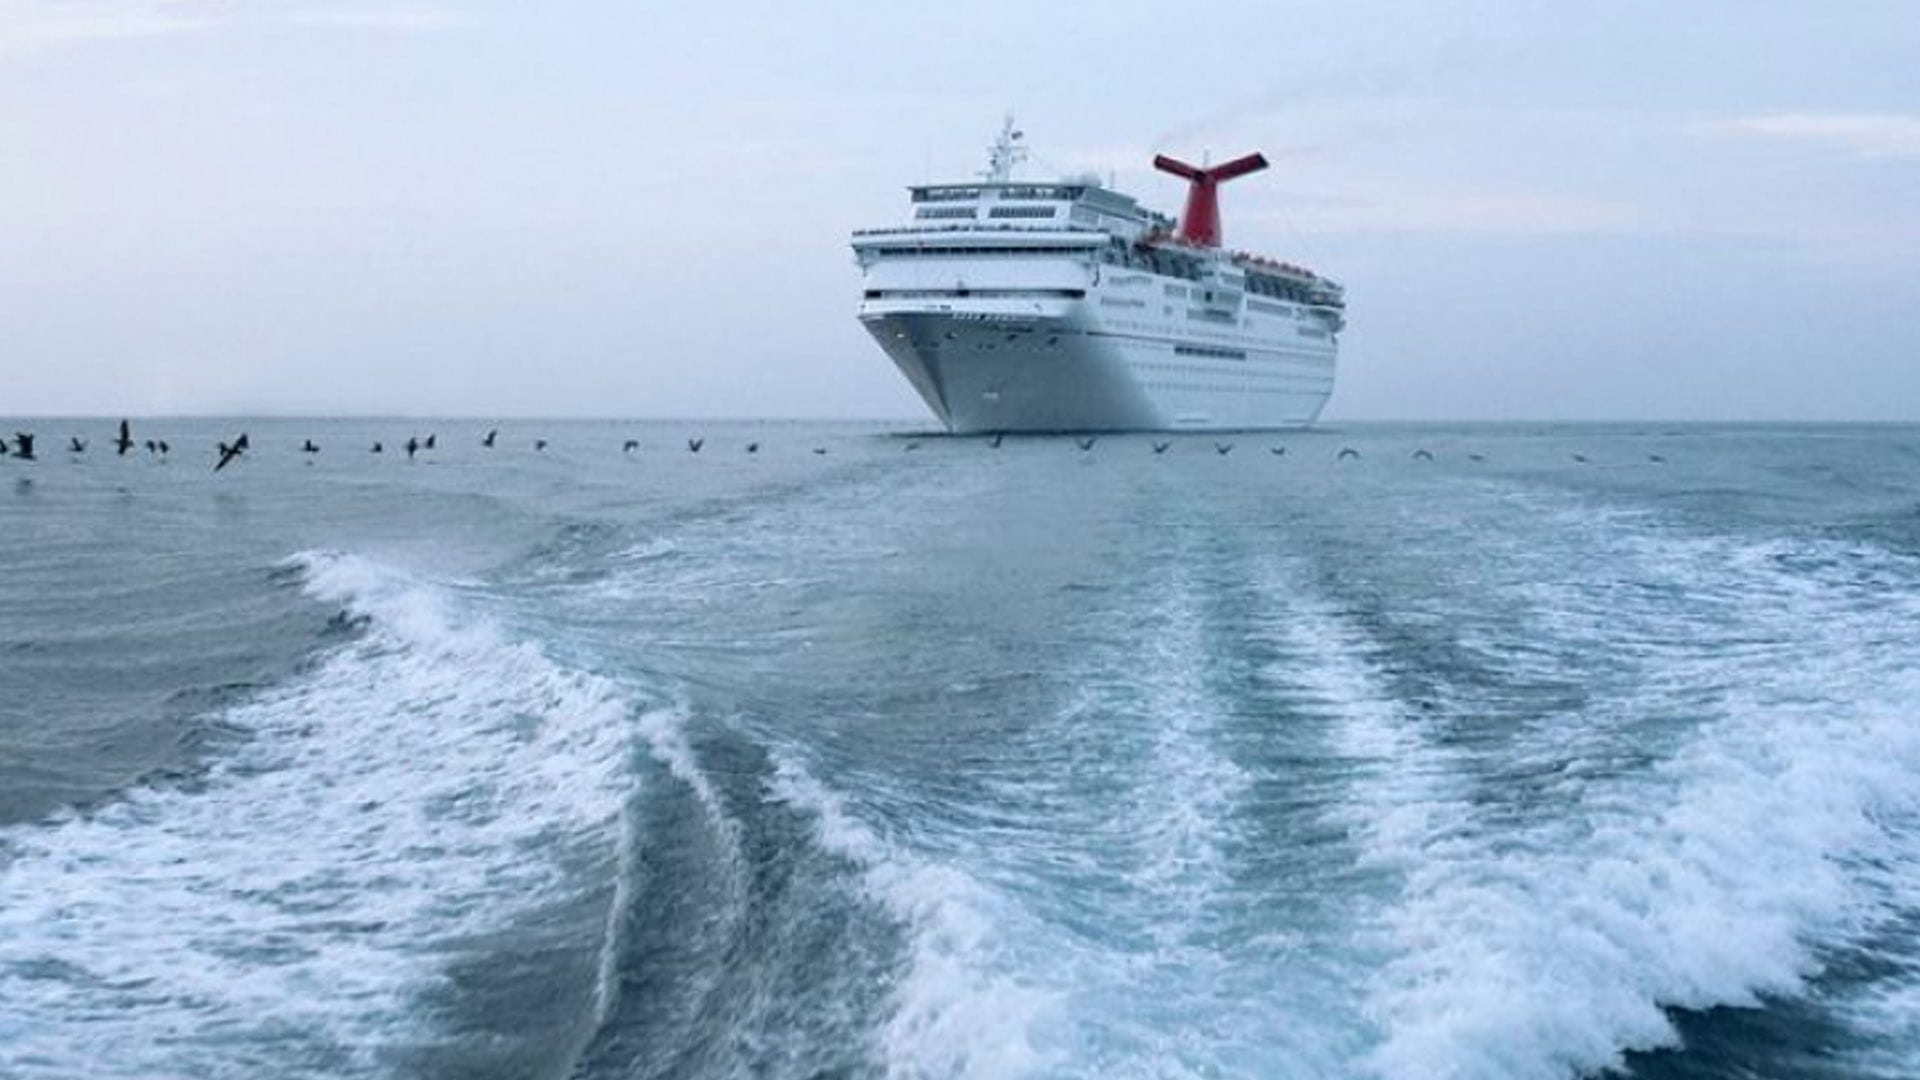 Carnival Corp, Bahamas in Two New Port Development Projects